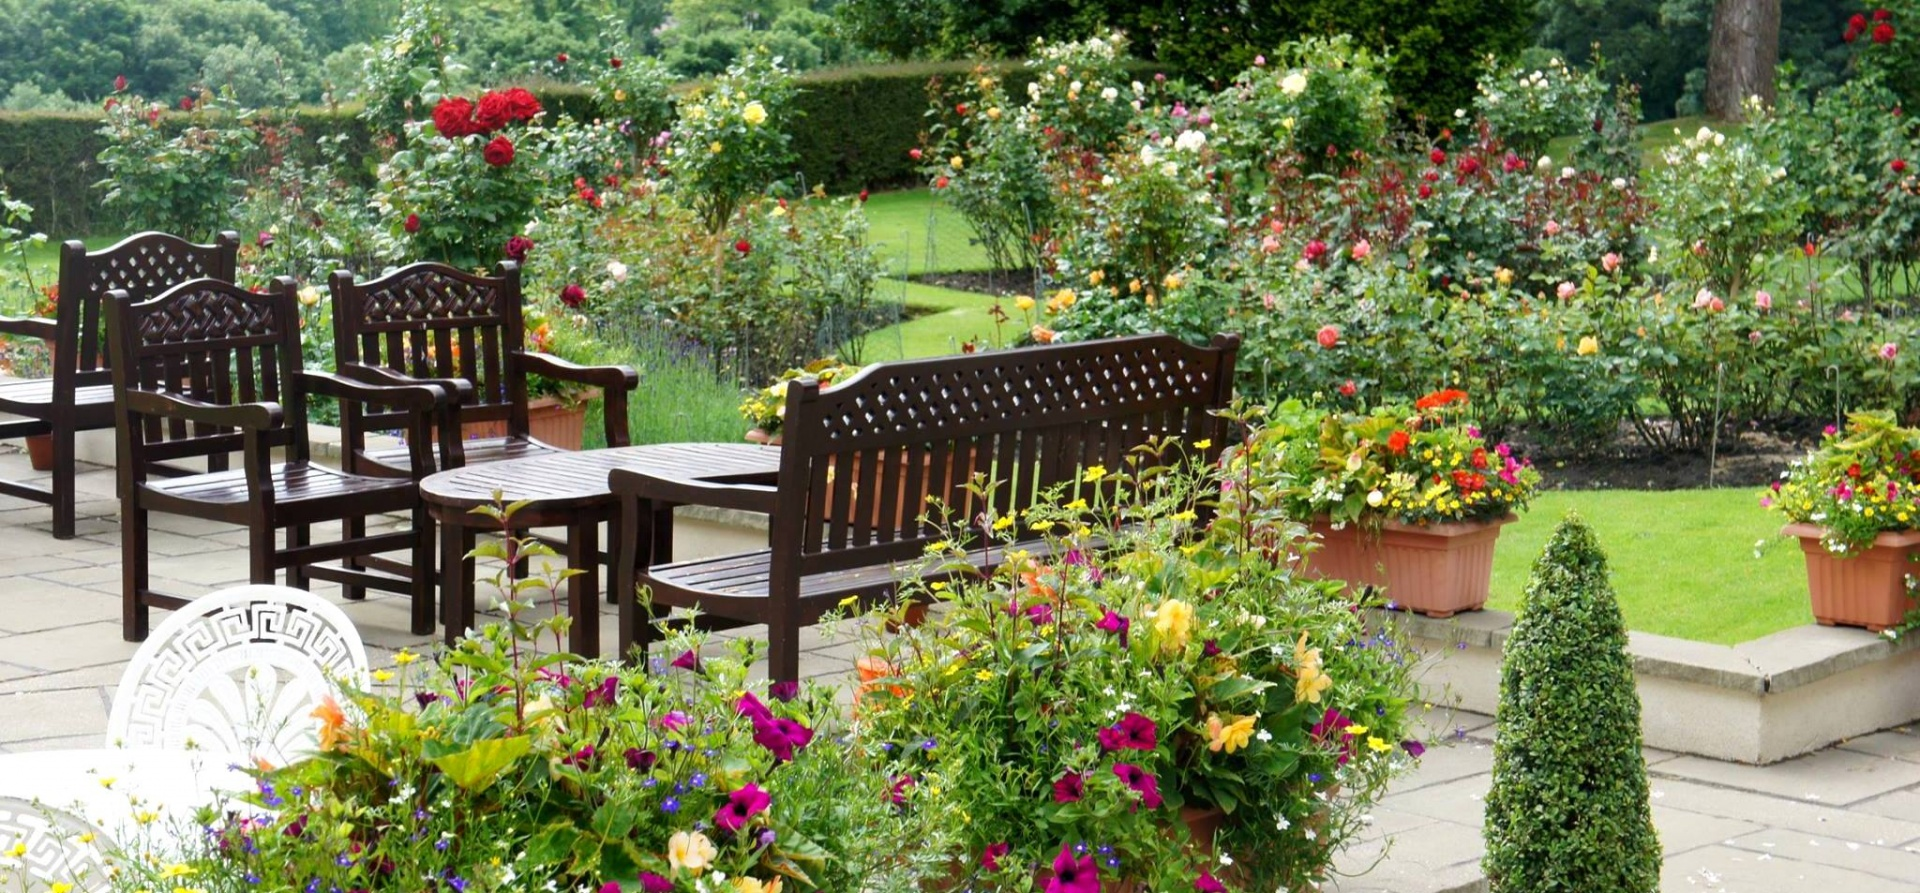 2 Night Serenity Spa Break for Two - Cumbria-6